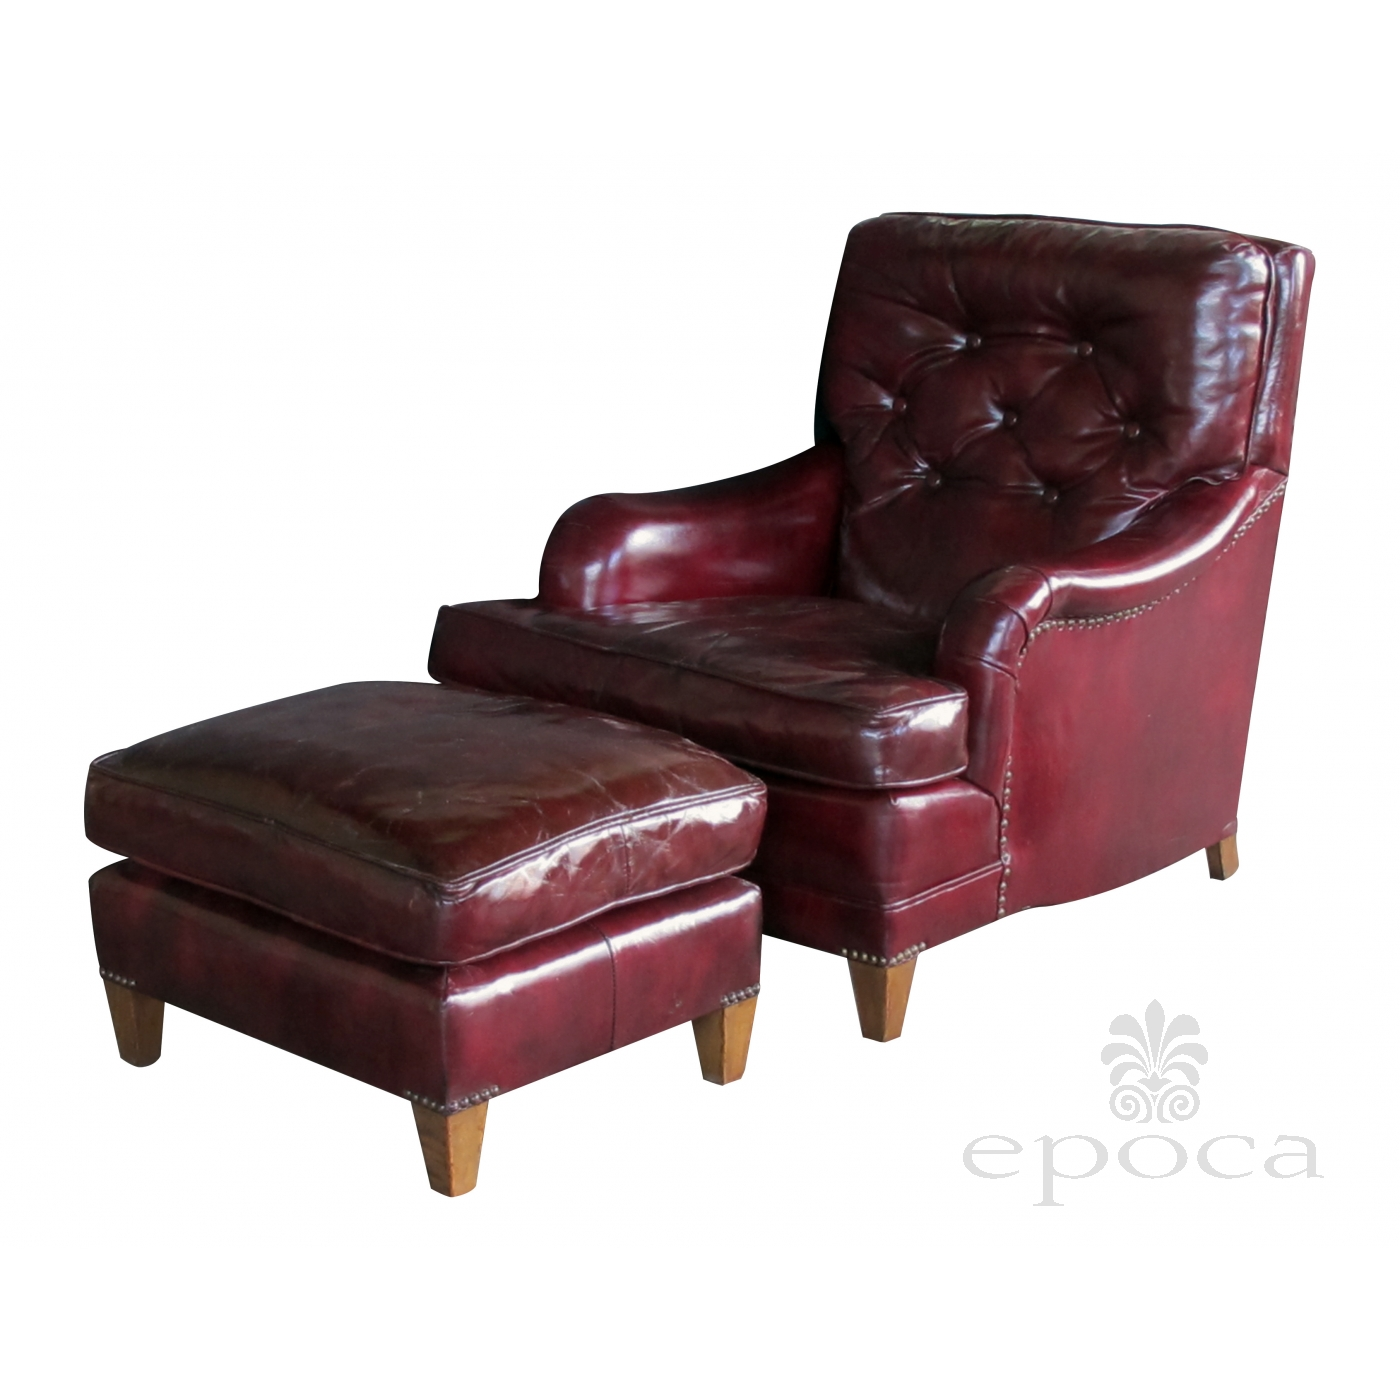 Astonishing A Handsome And Comfortable American 1940S Chesterfield Club Evergreenethics Interior Chair Design Evergreenethicsorg